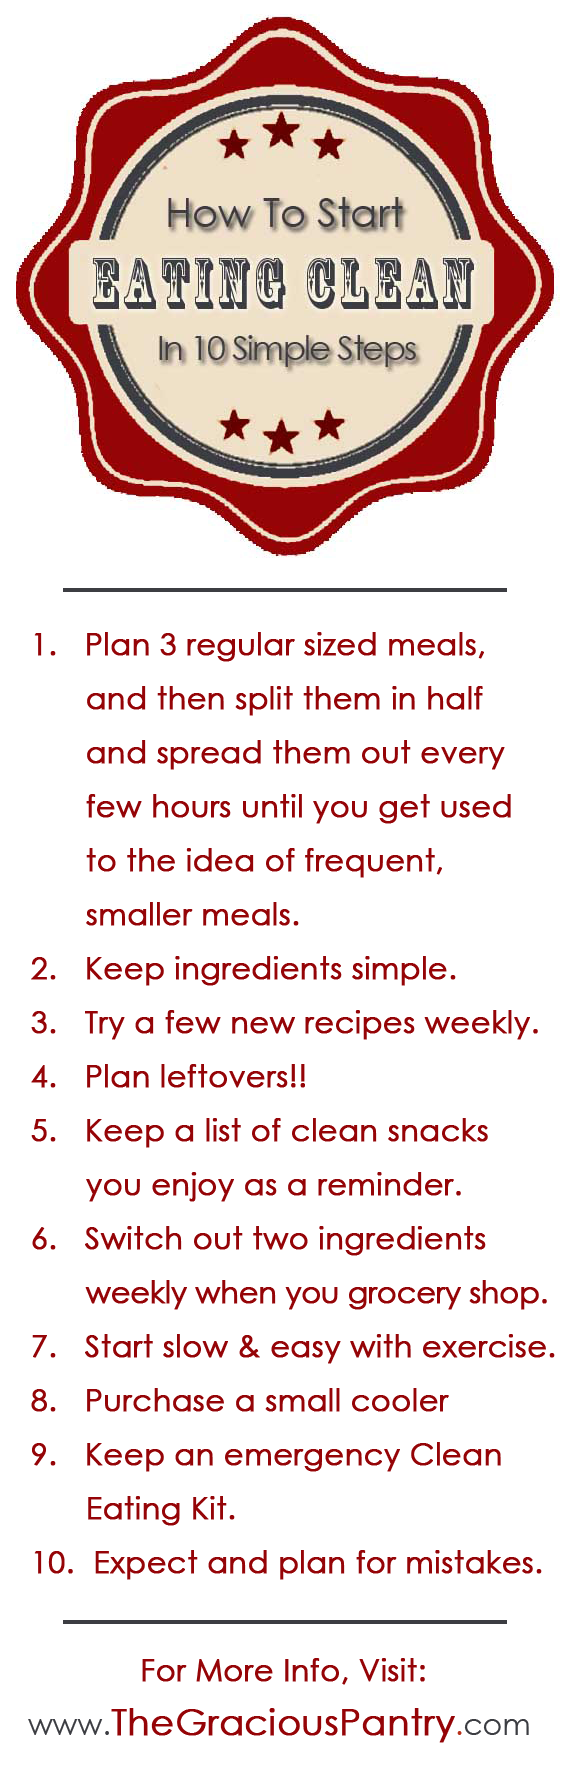 How To Start Eating Clean Pin Graphic For Pinterest